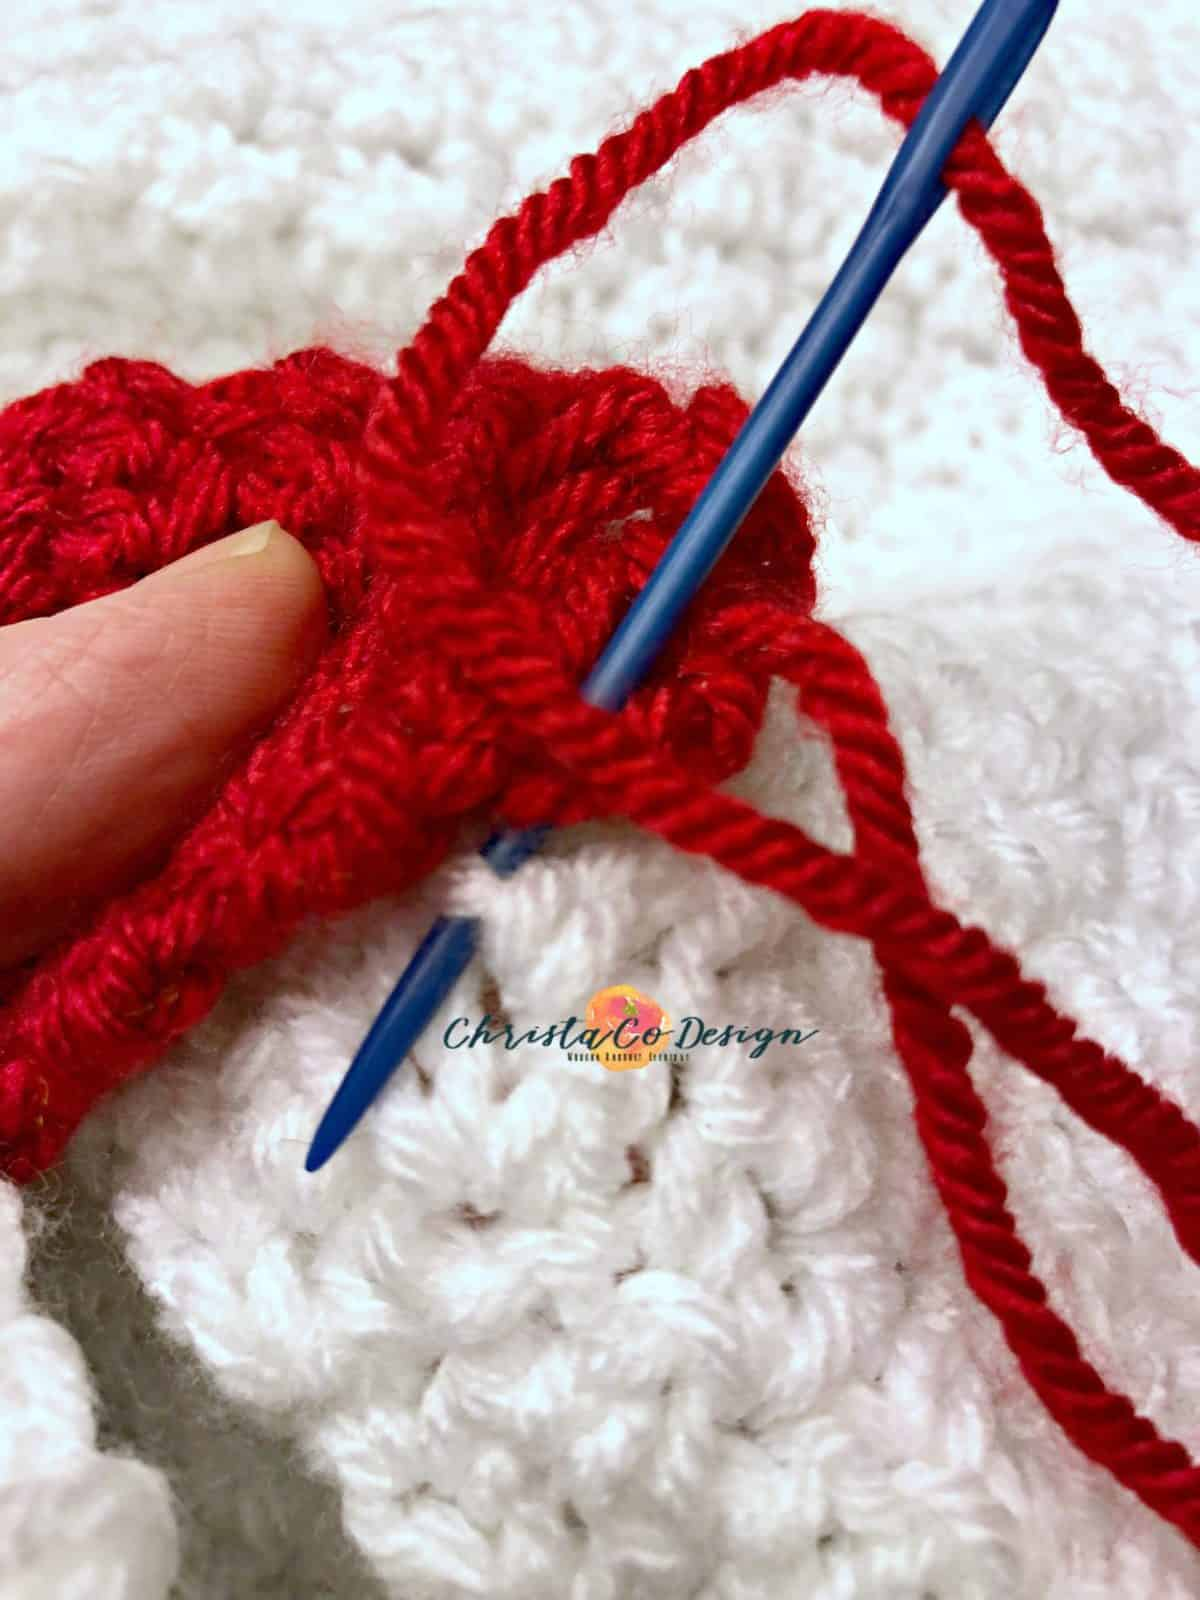 picture of blue yarn needle threaded with red yarn matching the Christmas light to appliqués on to white blanket